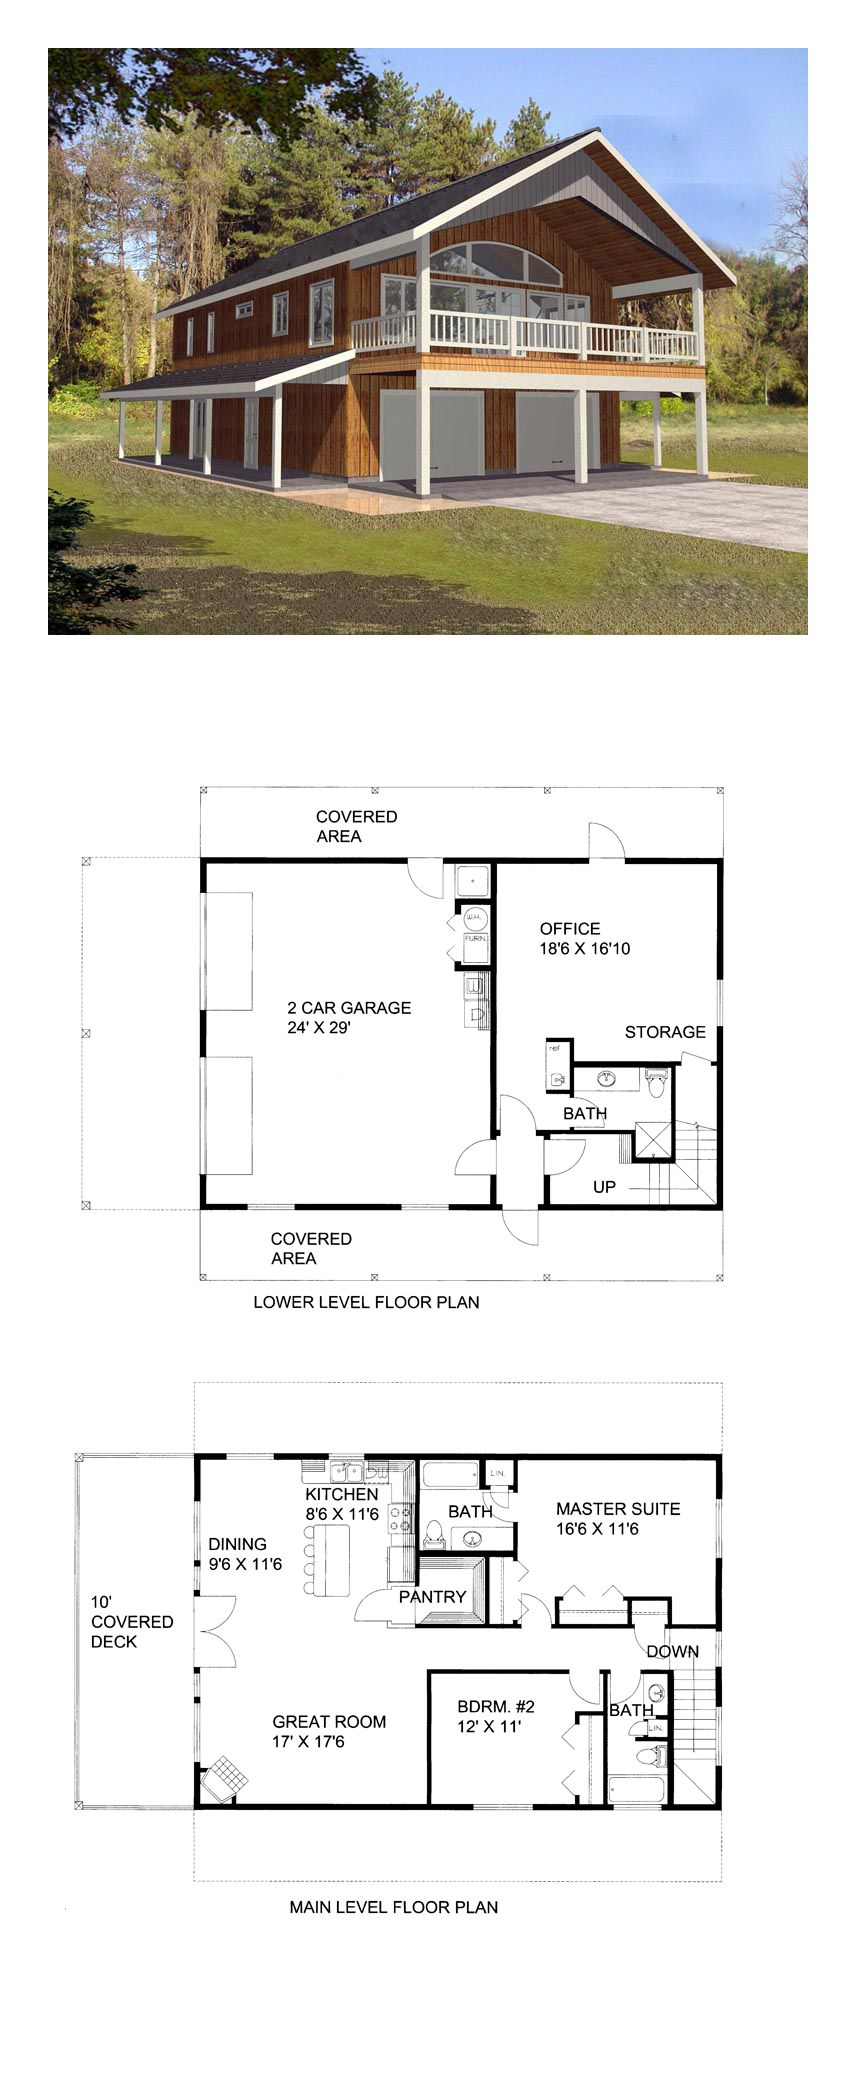 Garage apartment plan 85372 total living area 1901 sq for Contemporary garage apartment plans